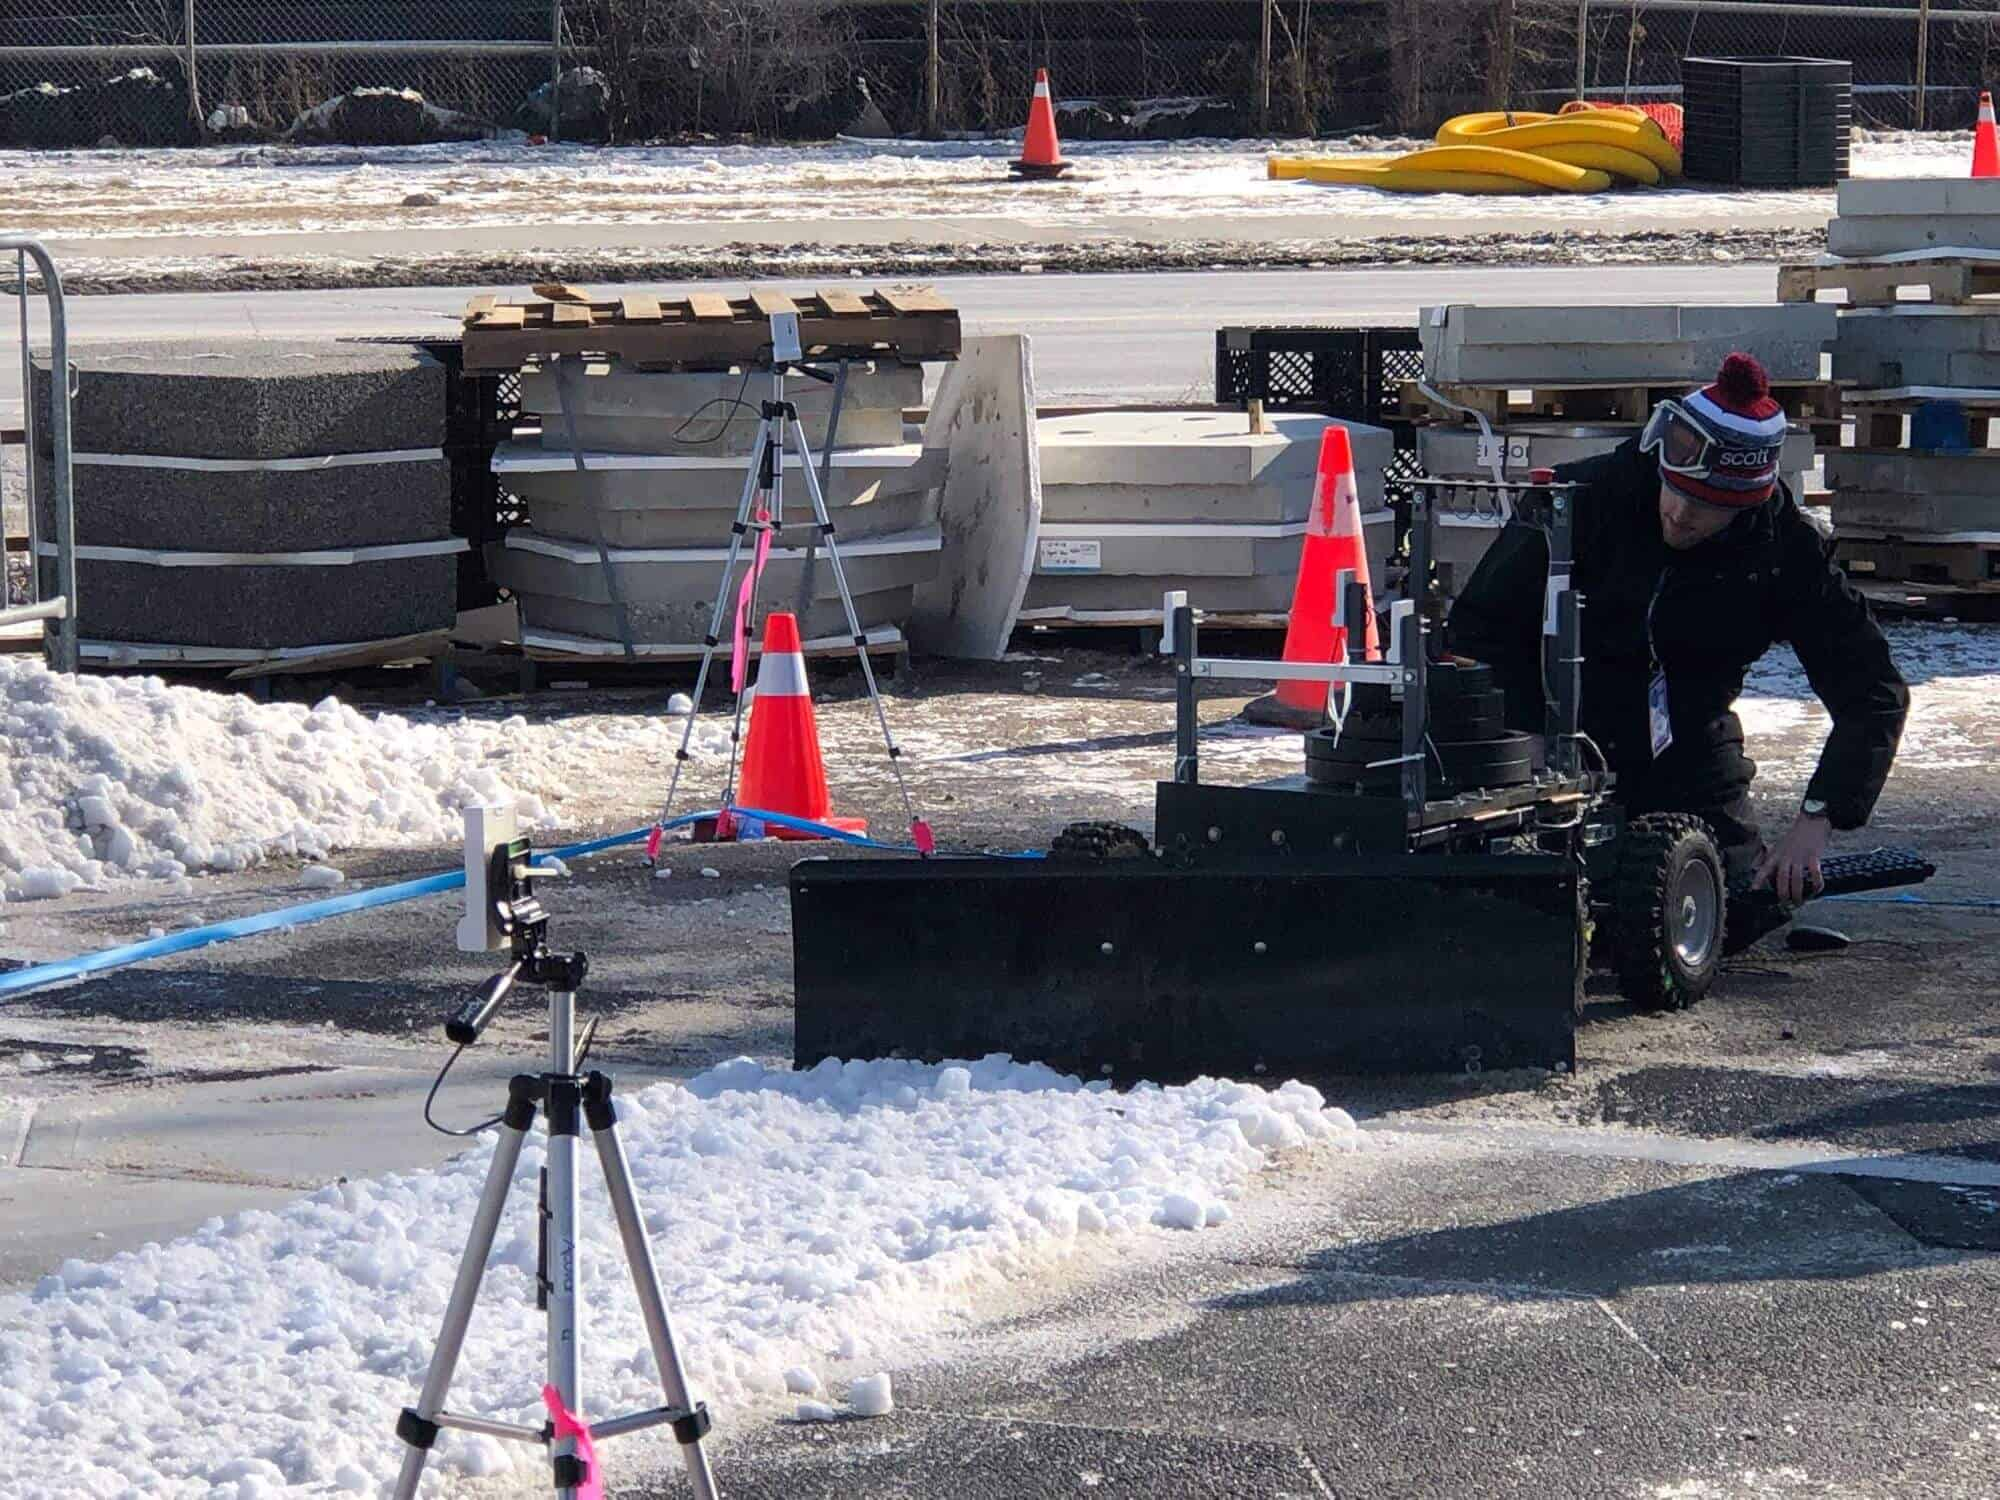 The autonomous snowplow competition at Google Sidewalk Labs